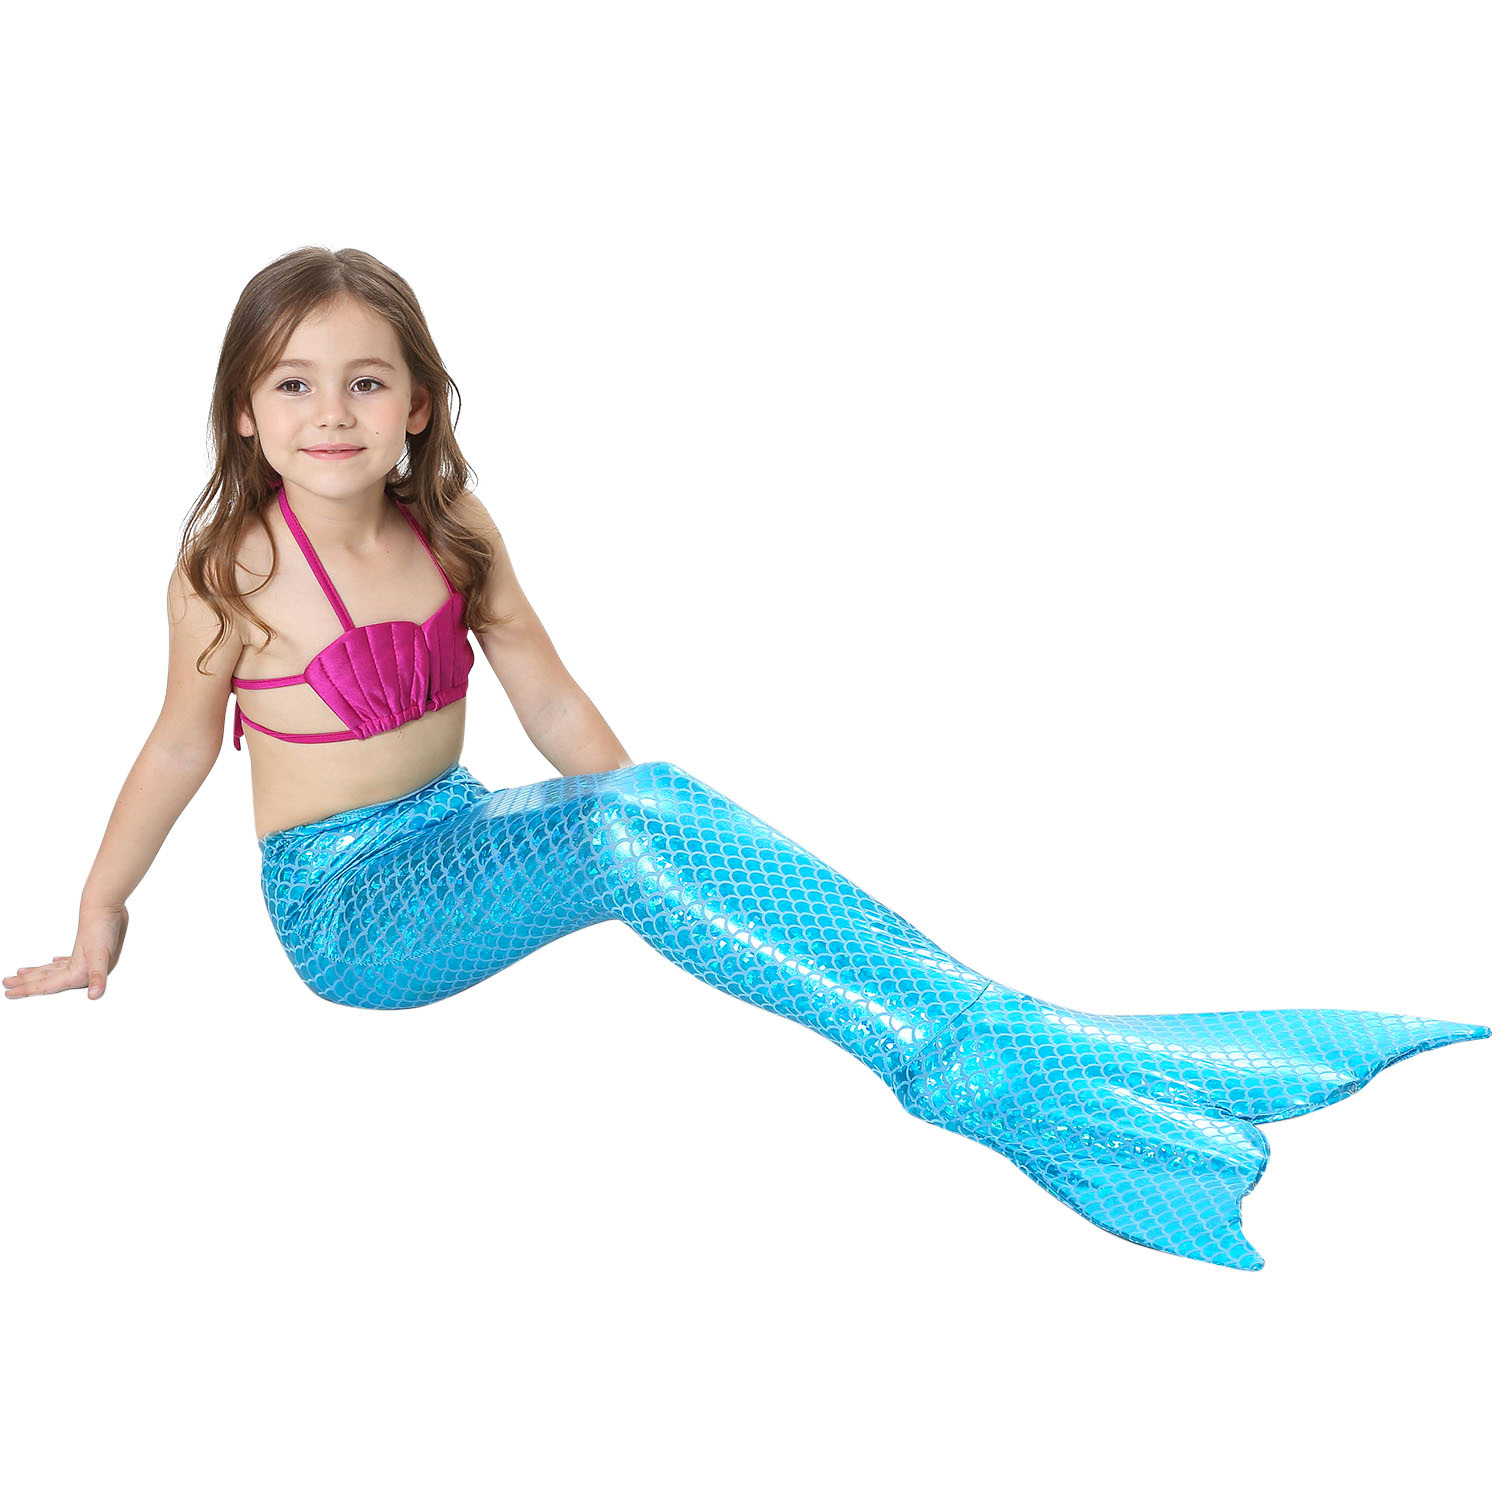 Children can carry fins mermaid mermaid swimsuit mermaid tail bathing suit clothes cos gift halloween costume for kids in Girls Costumes from Novelty Special Use